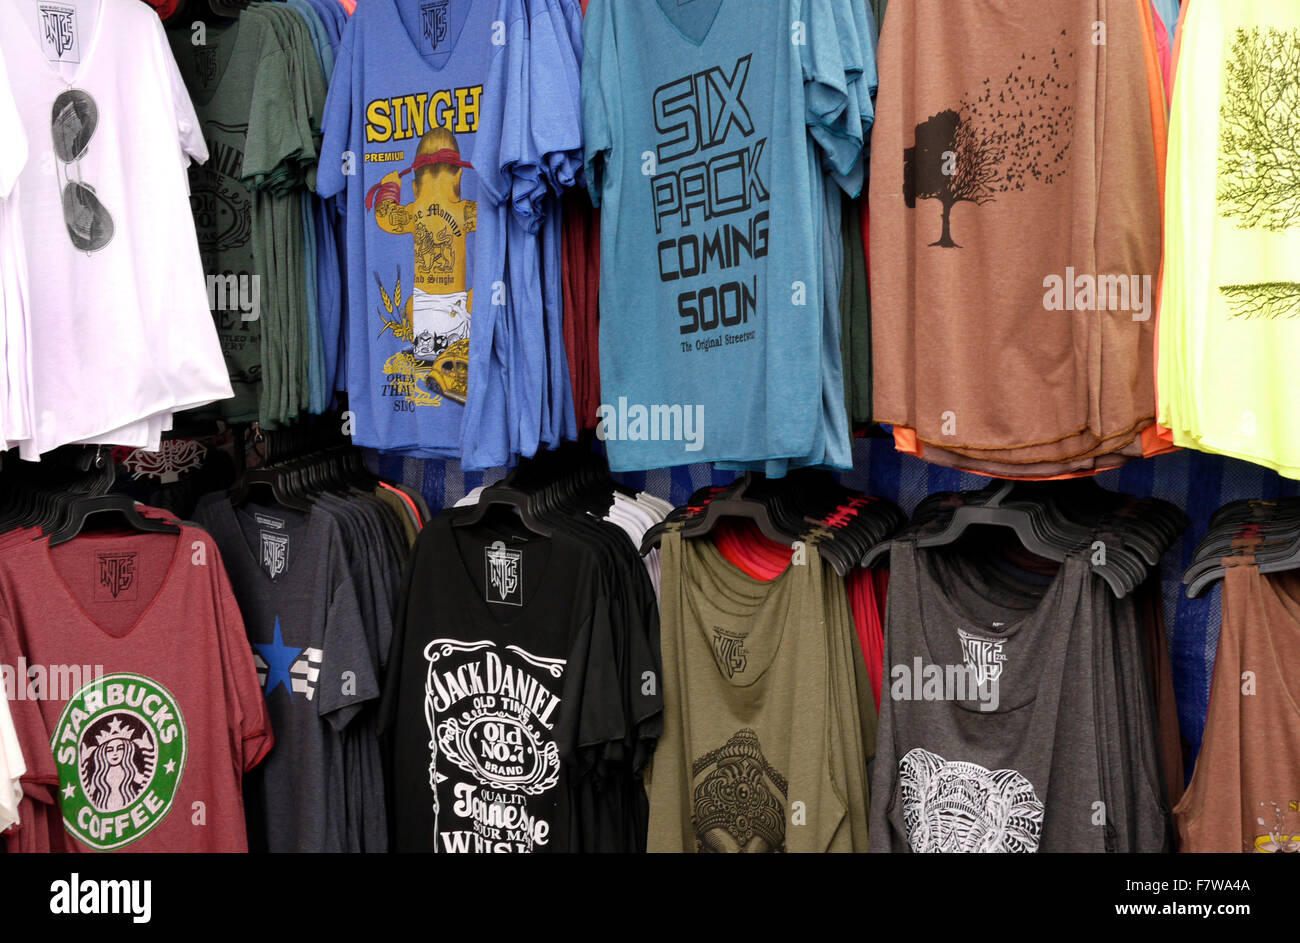 9589d5117d2 T Shirts for sale on a market stall in Pattaya Thailand Stock Photo ...